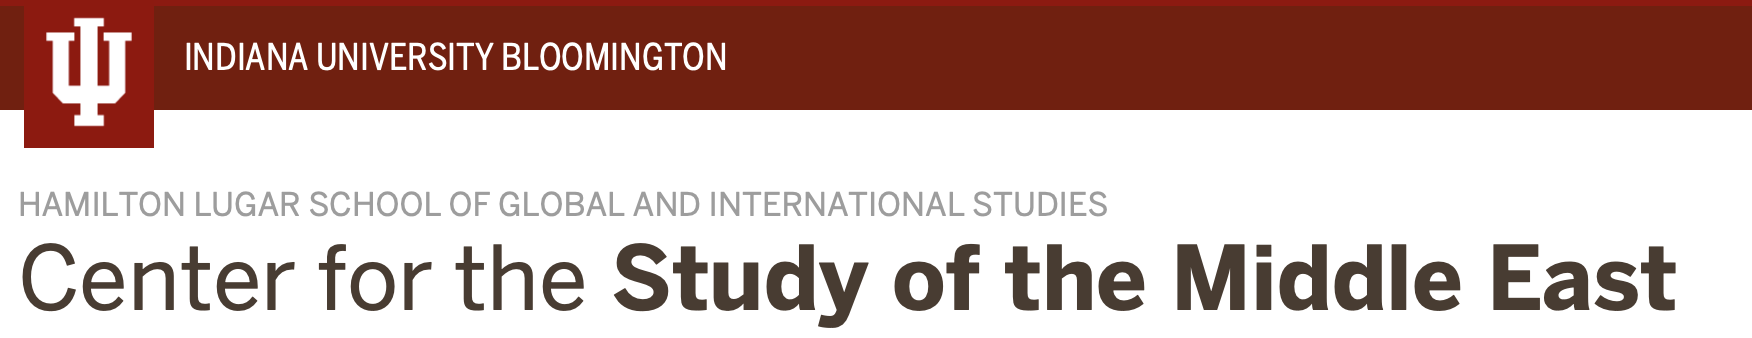 Center for the Study of the Middle East